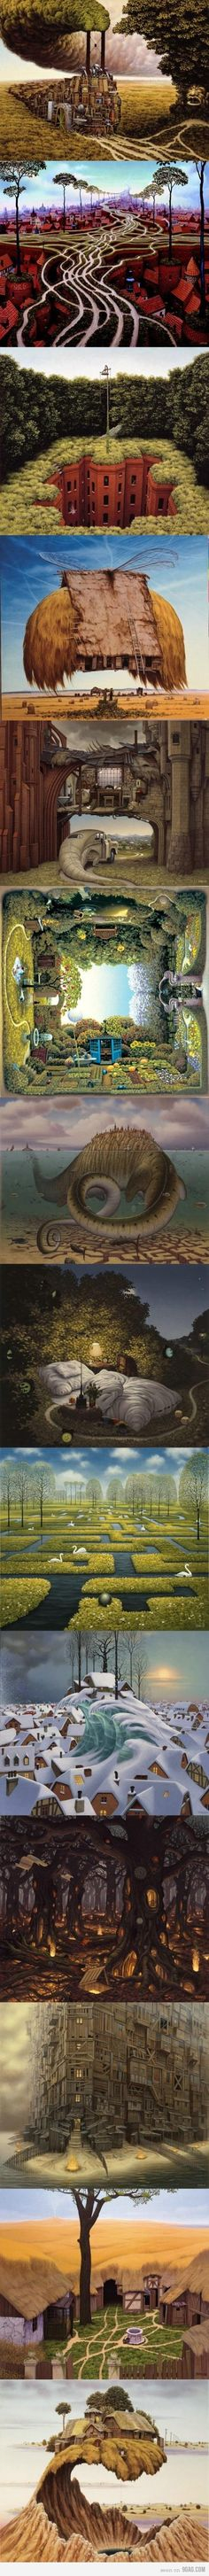 Some very interesting drawings by Jacek Yerka